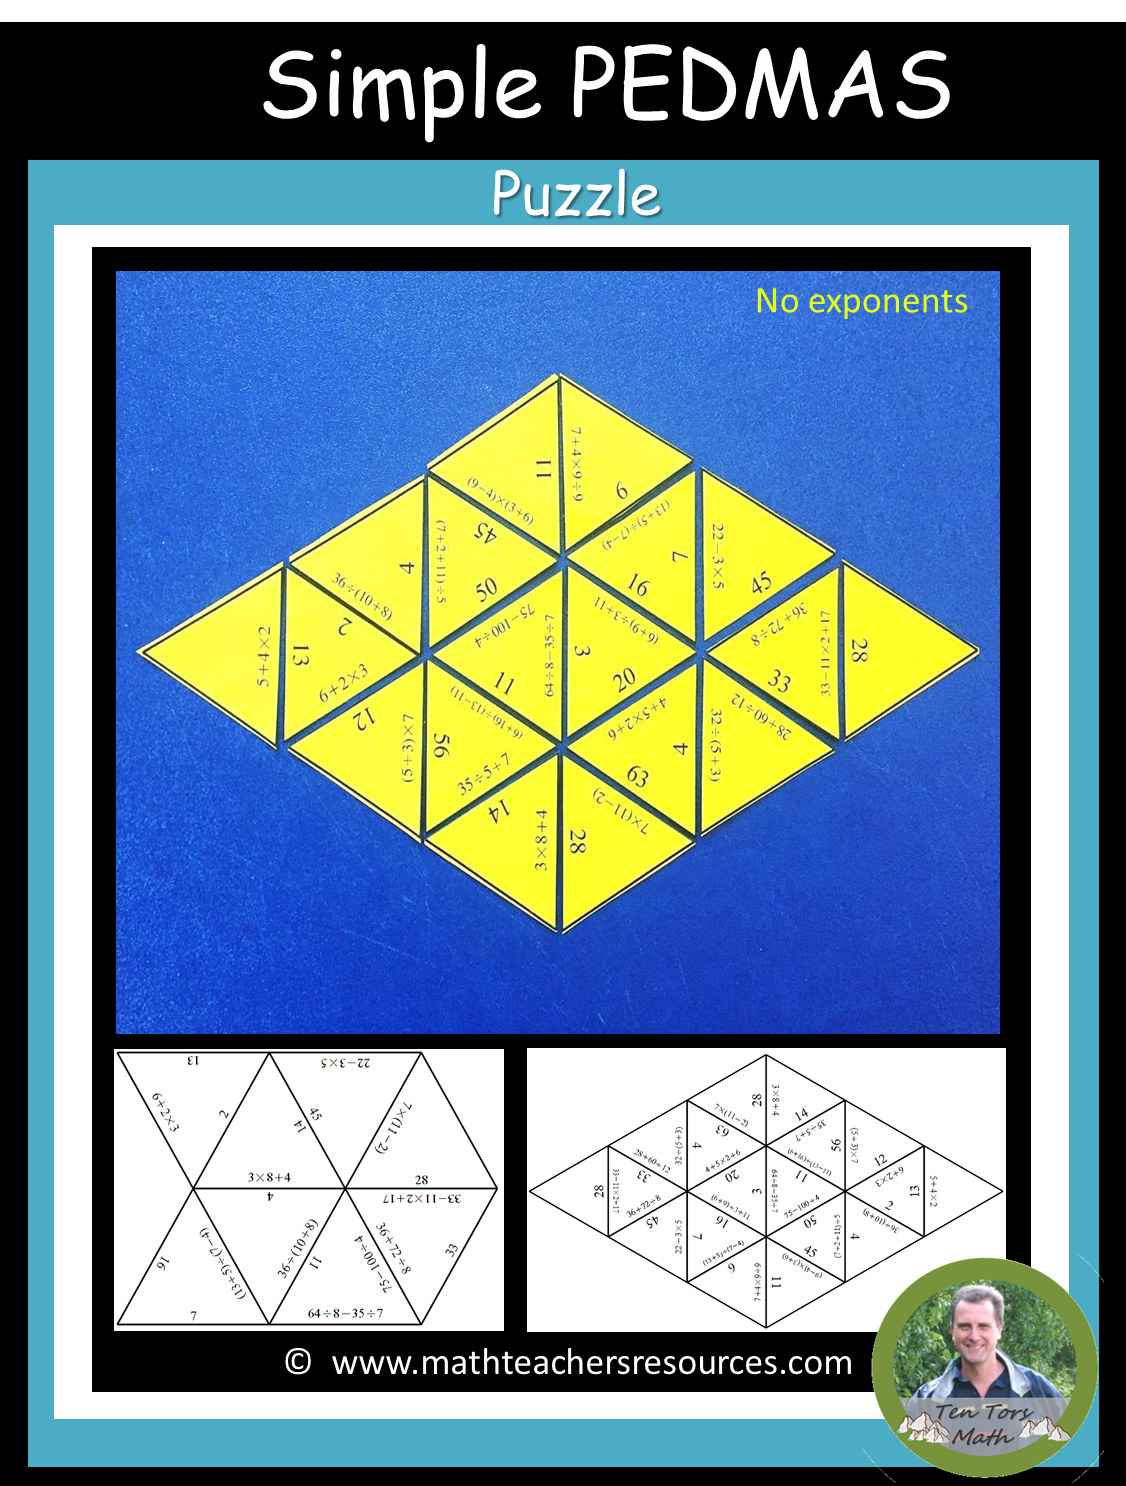 A Simple Pedmas Puzzle Activity This Is For Younger